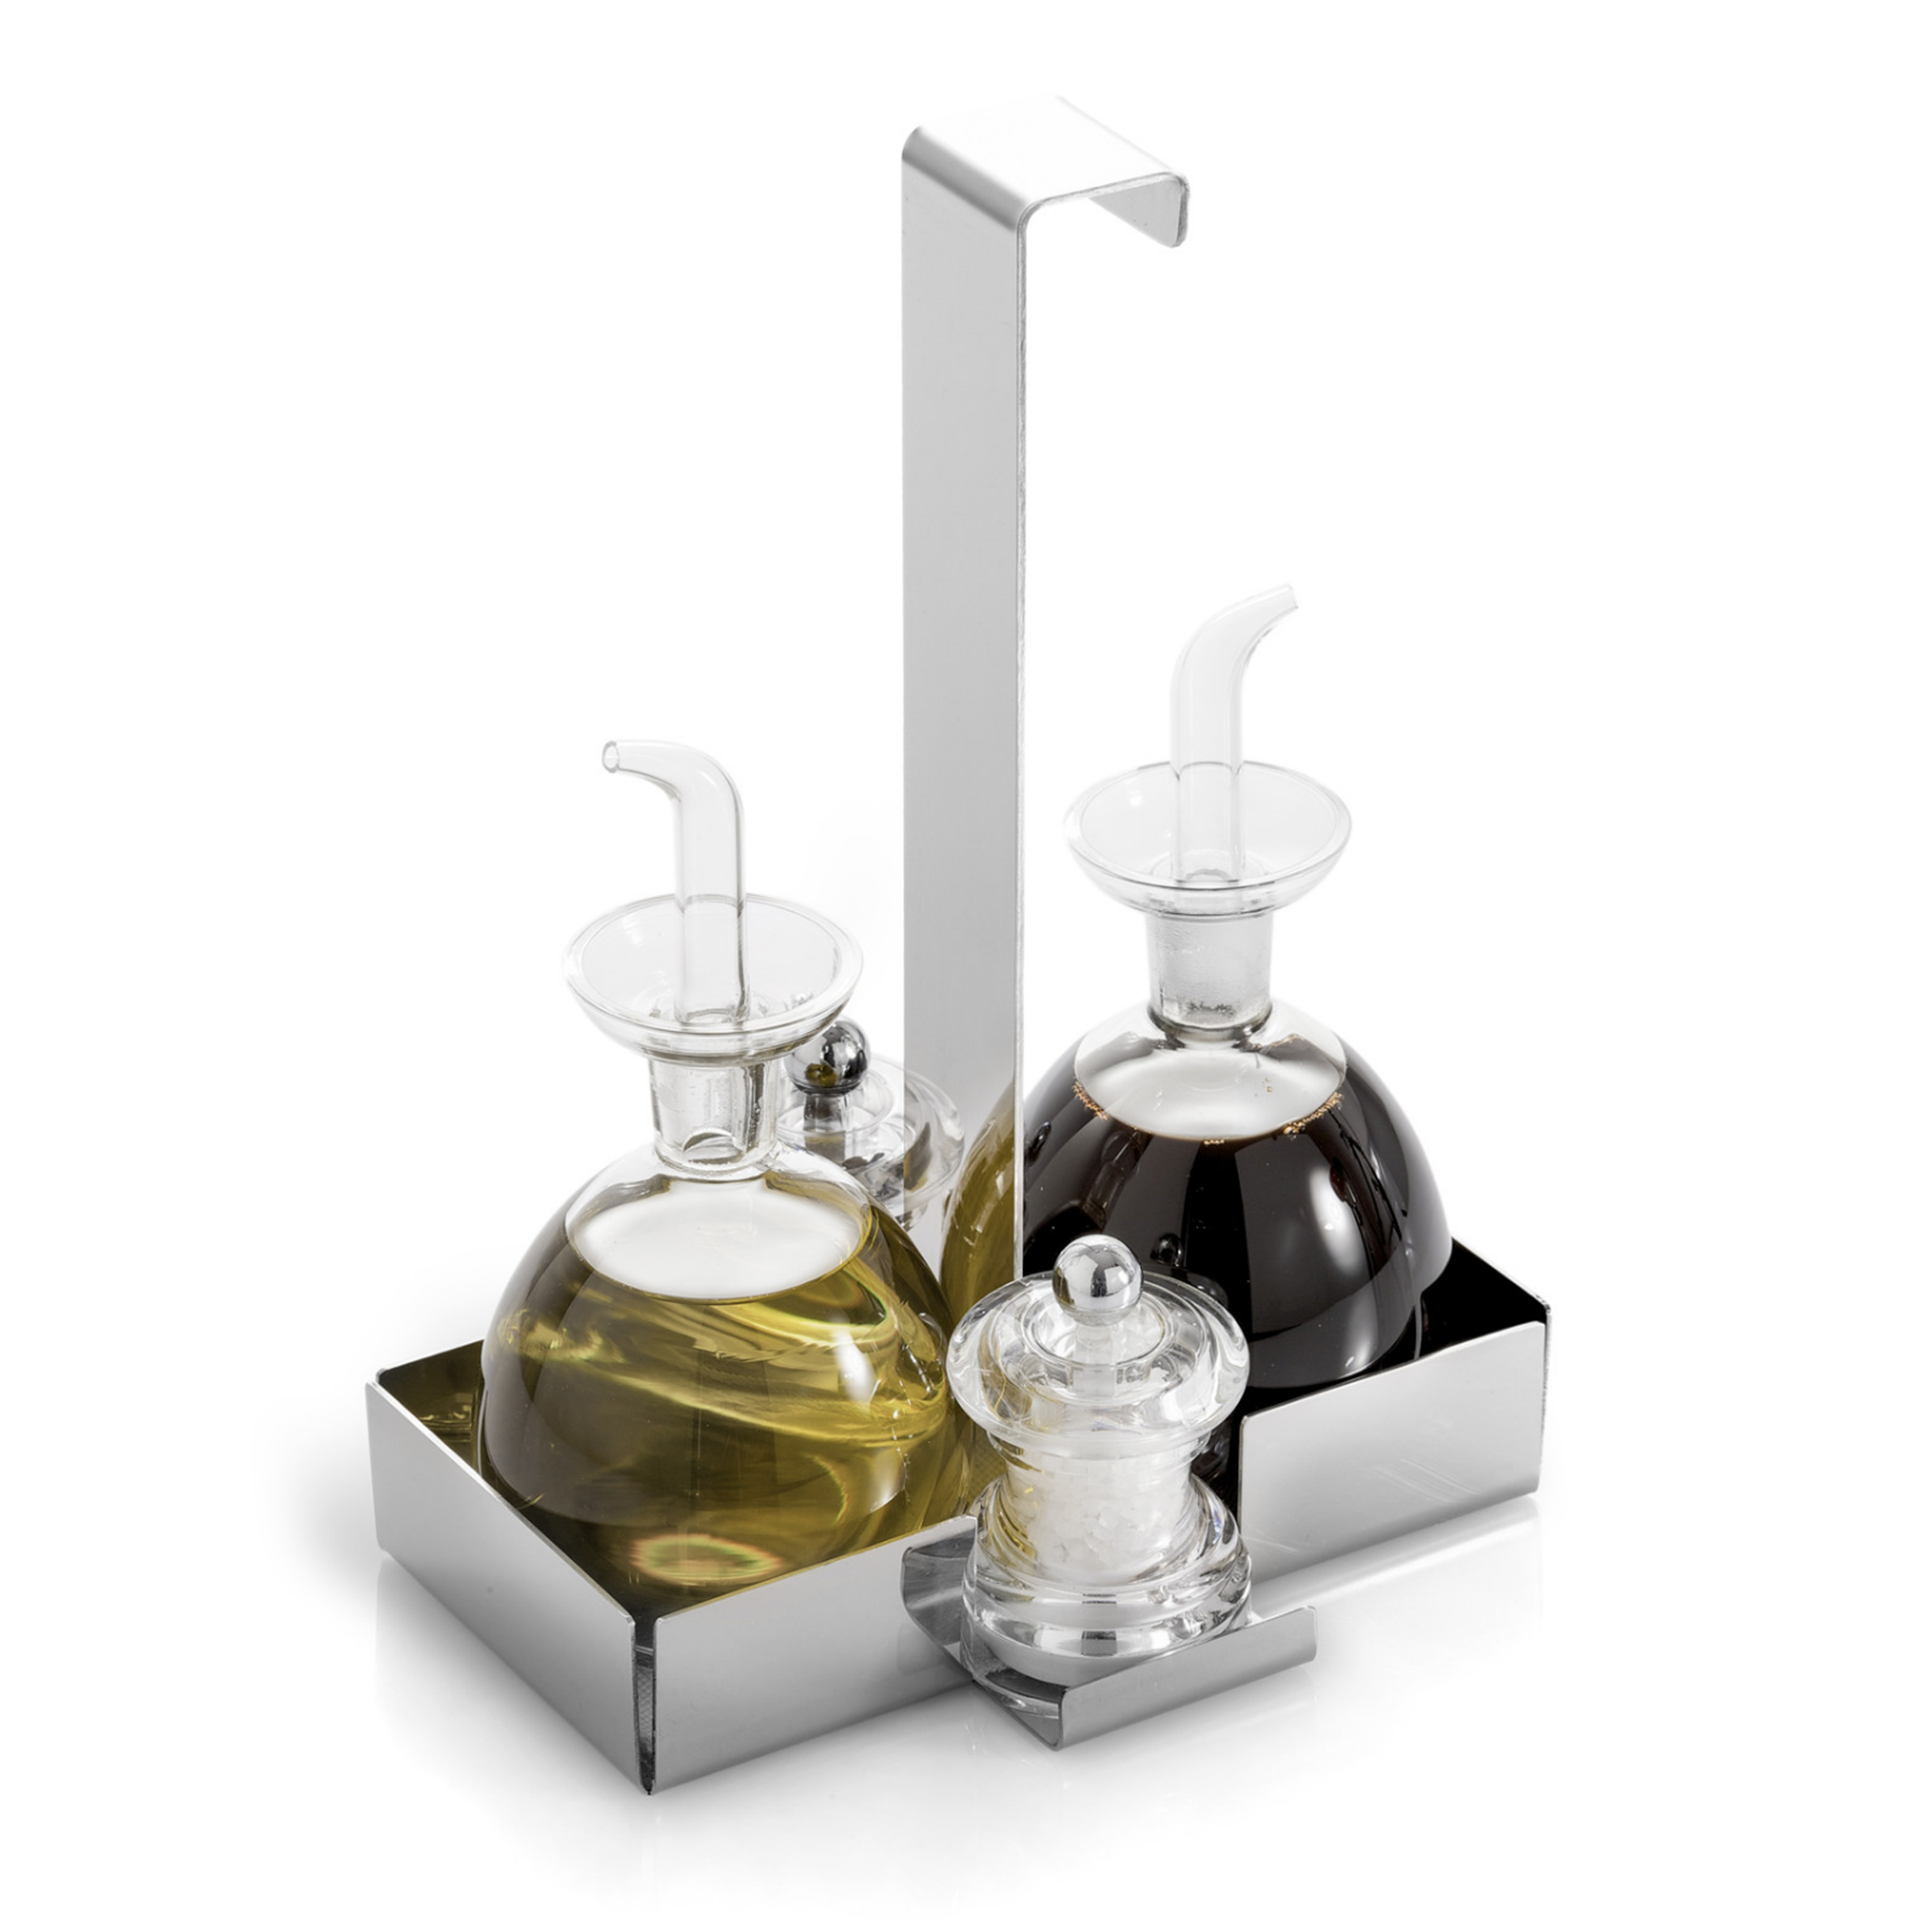 Tabletop Condiment Caddy With Oil And Vinegar Cruets And Salt And Pepper  Shakers